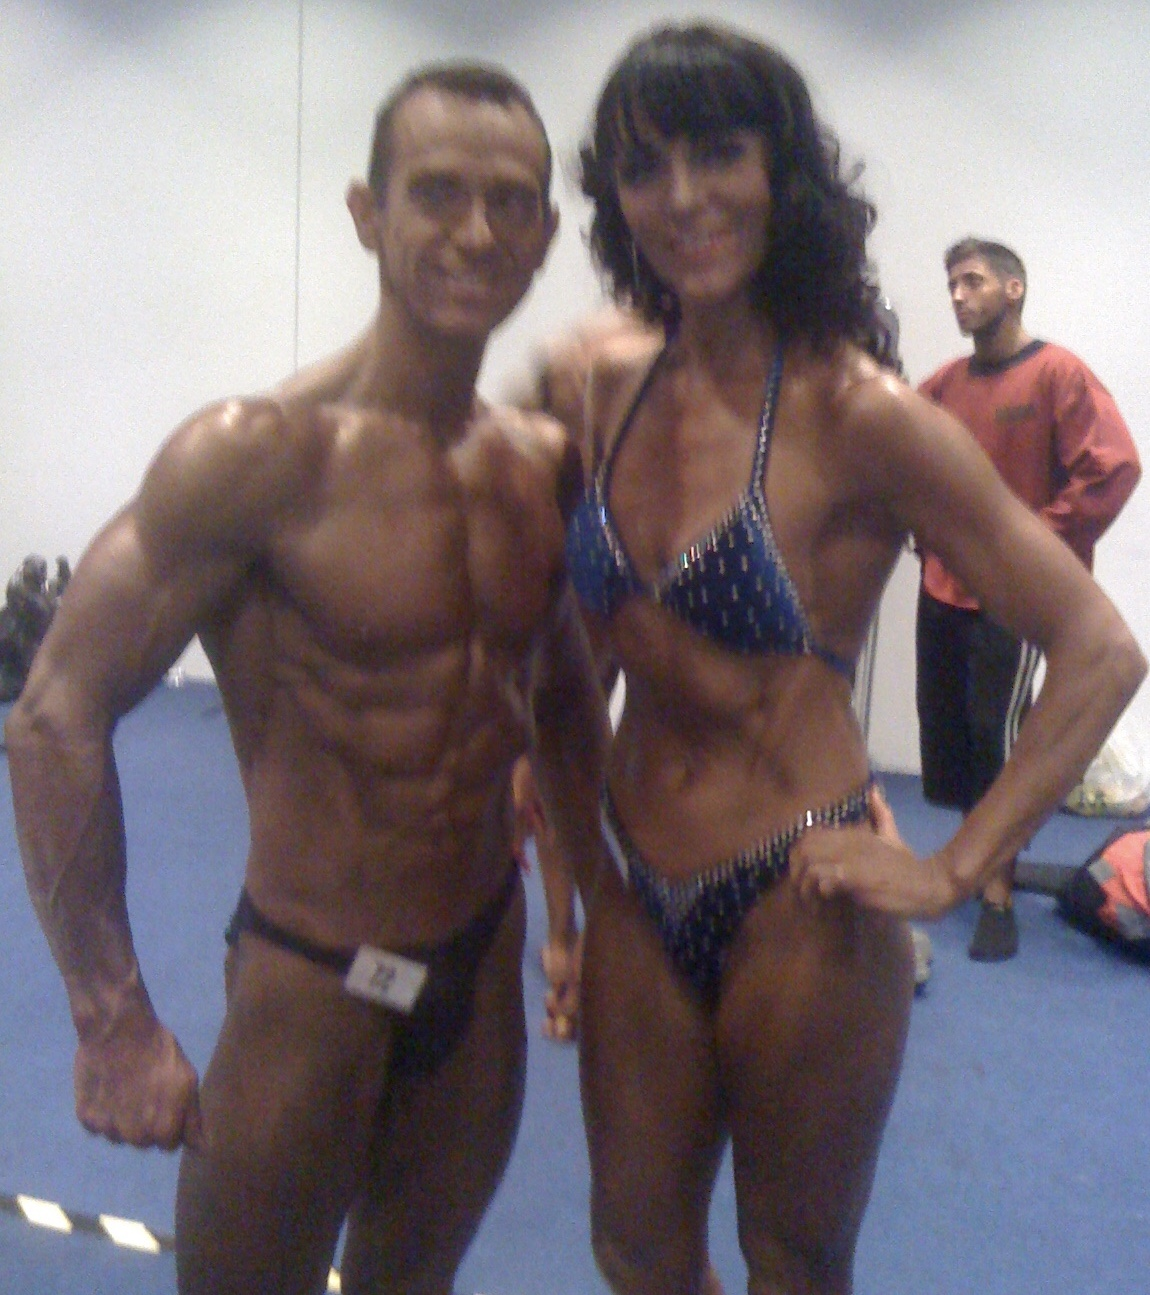 image of image: 13 of 21Debbie Francis Figure Athlete